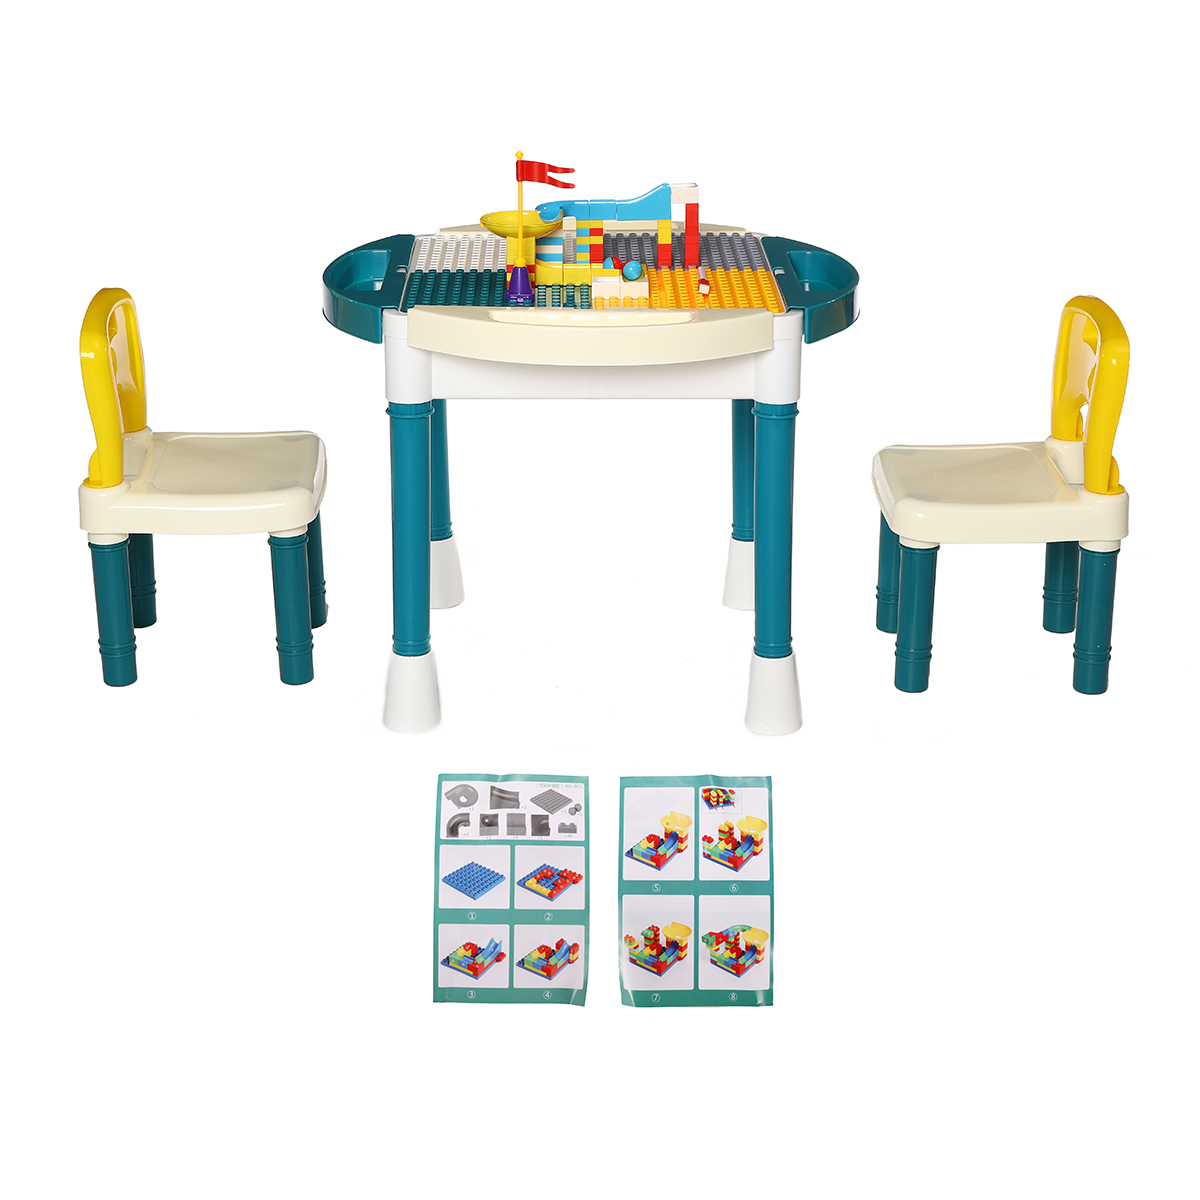 Children Building Blocks Kids Table and Chairs Set Toy Bricks Activity Play Baby